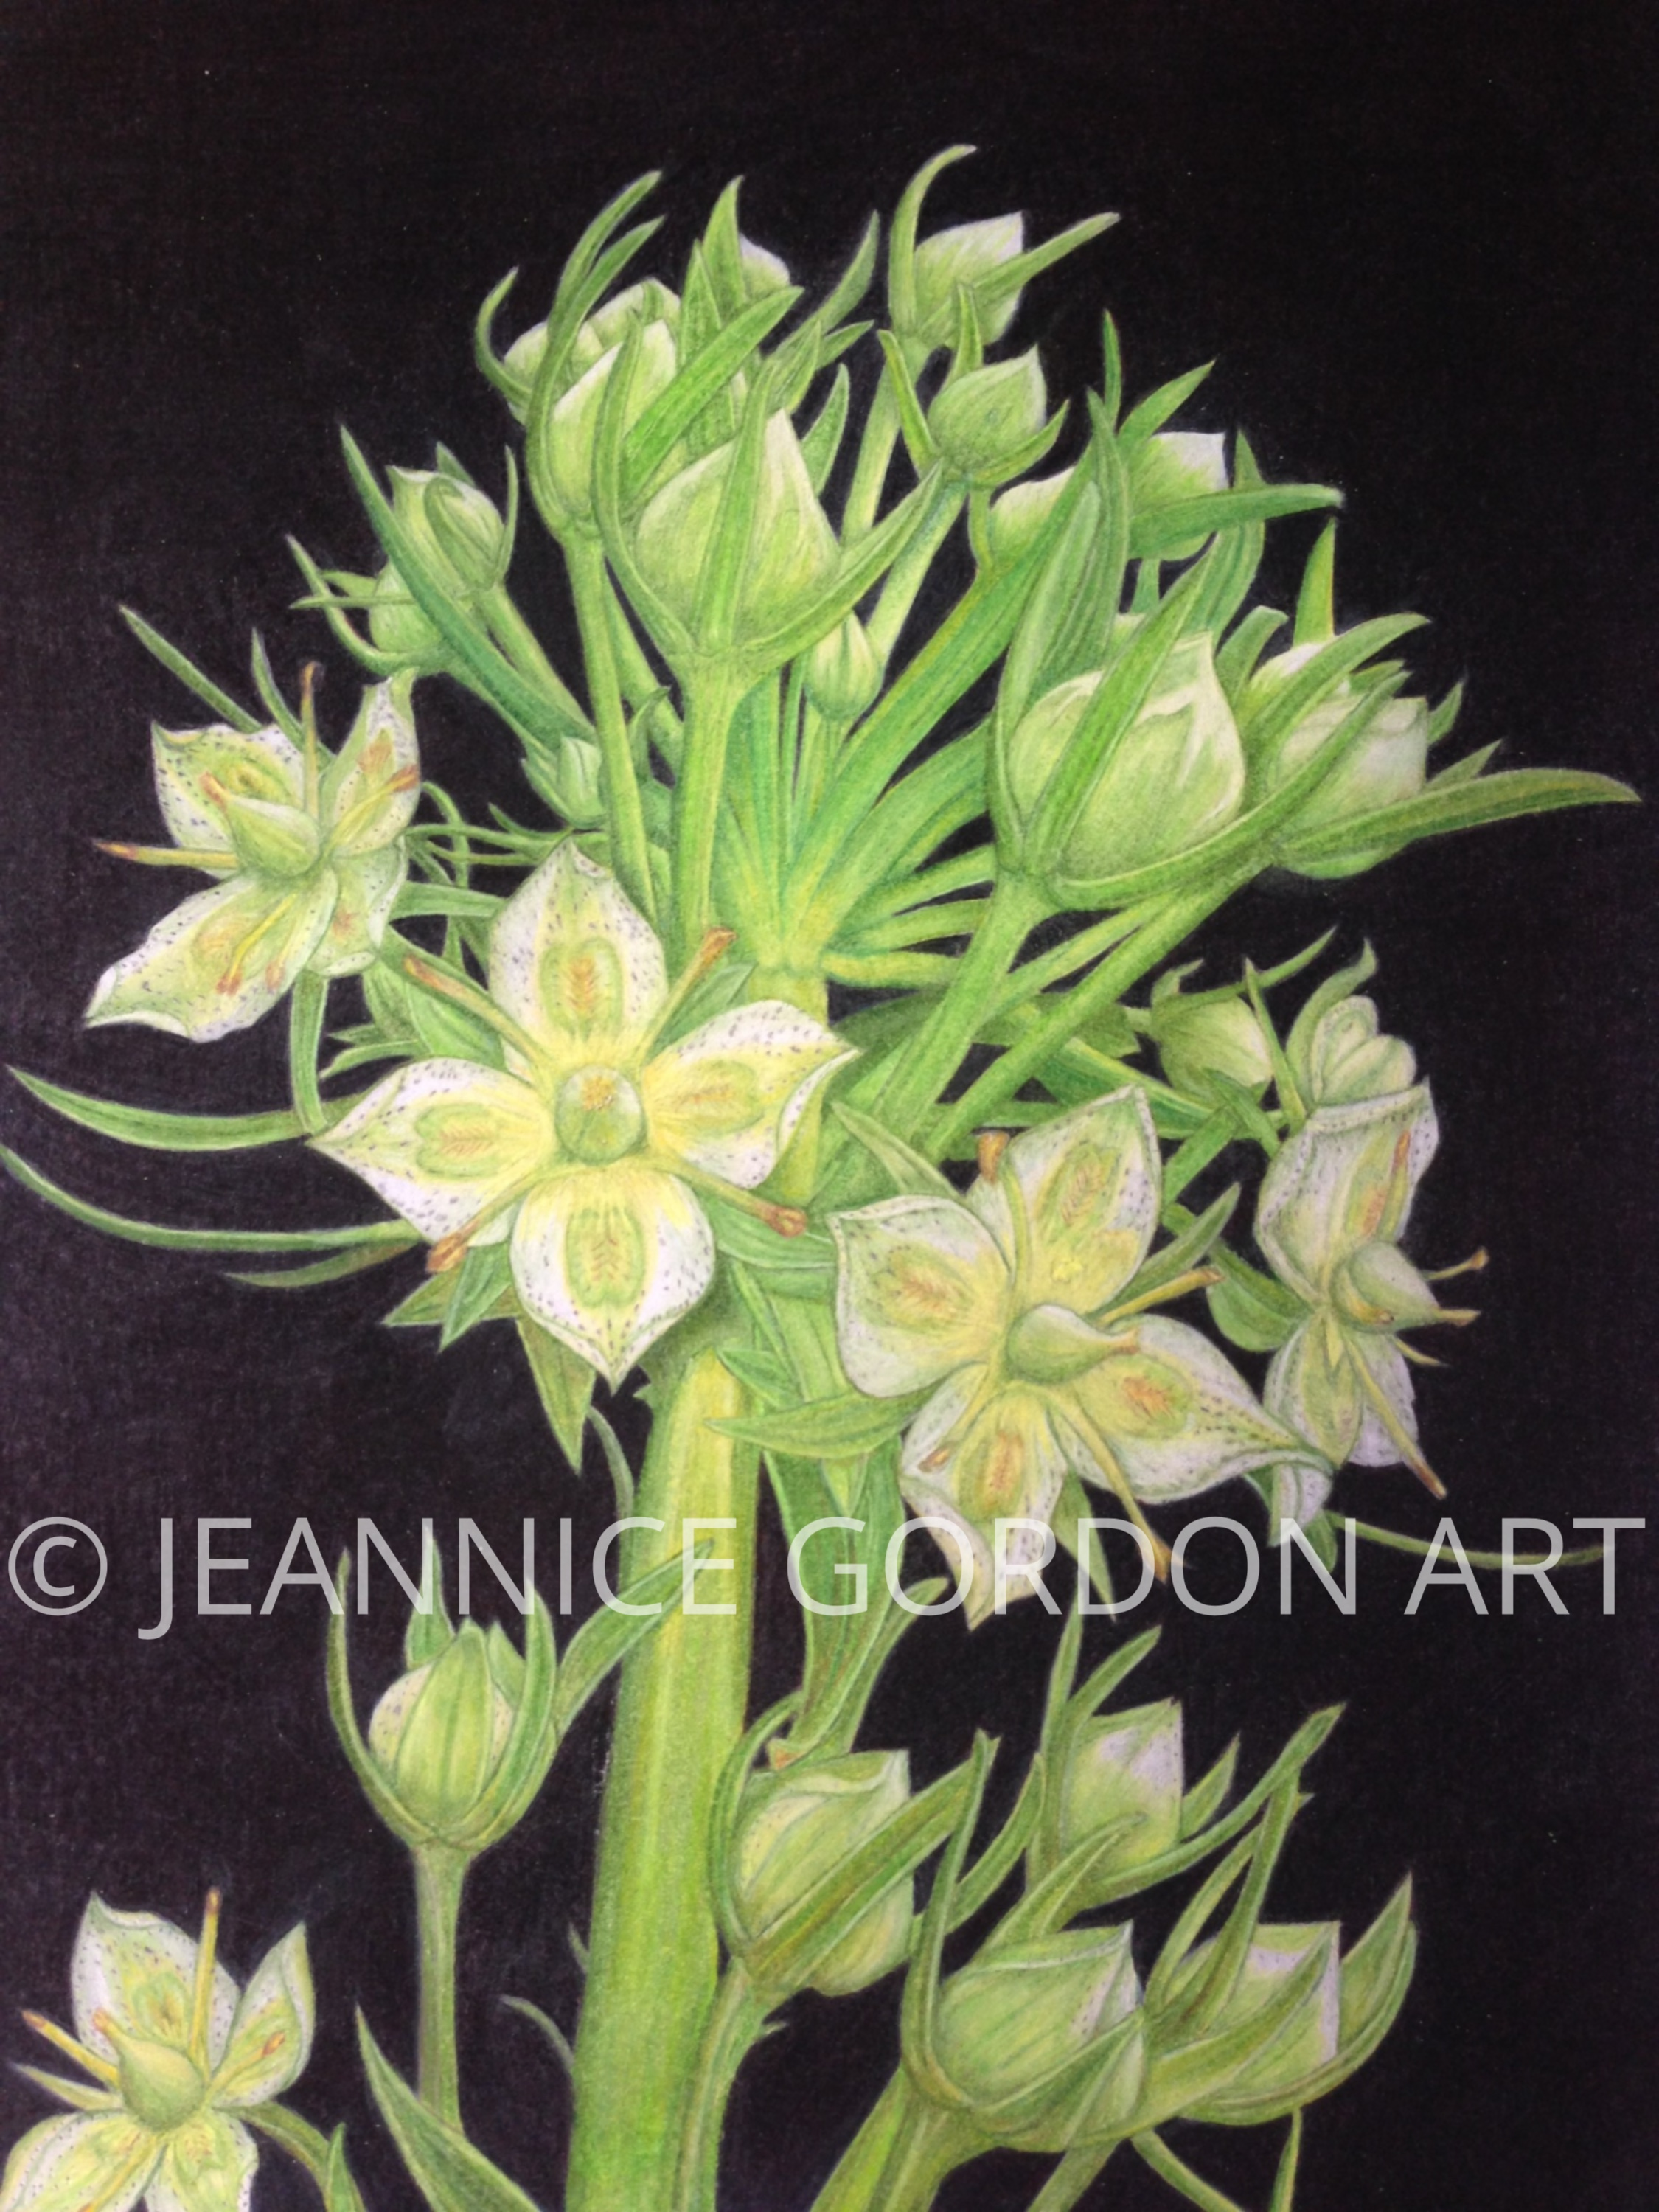 COLORADO MONUMENT PLANT by Jeannice Gord